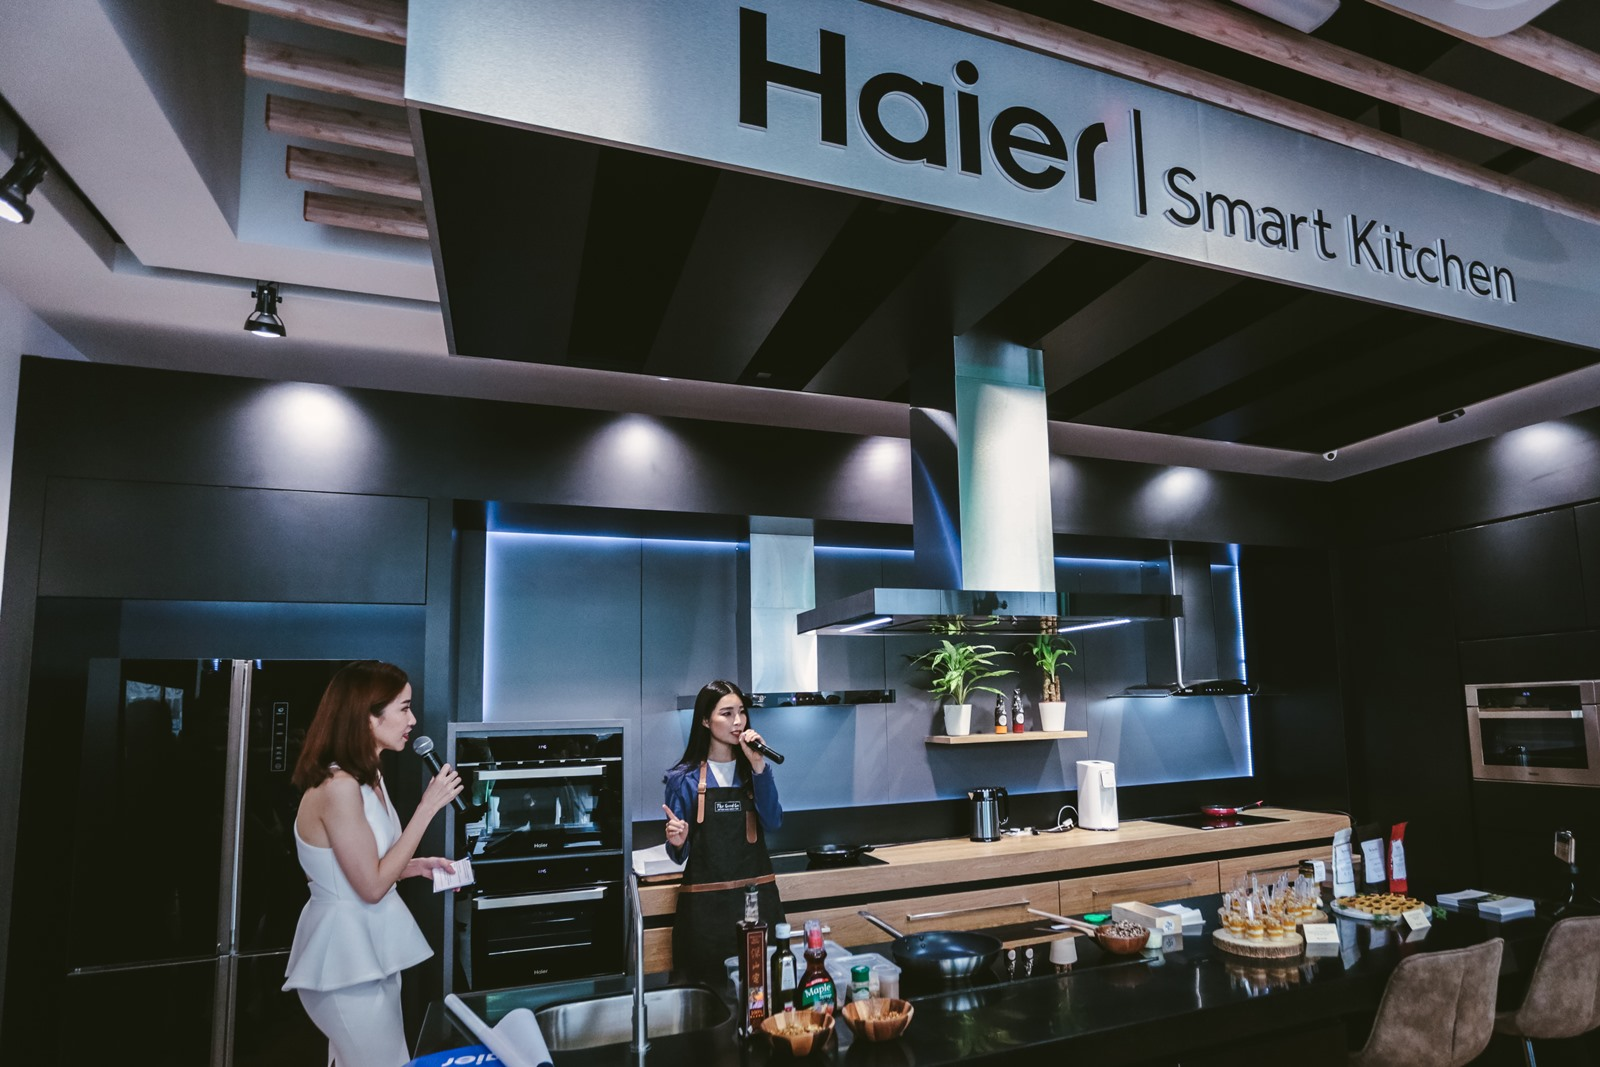 Former Miss Universe, Founder of The Good Co. and Haier friend, Ms Levy Li presented a mini food demo in the Haier Smart Kitchen with some healthy bites, in line with encouraging others to attain higher living and better quality of life.